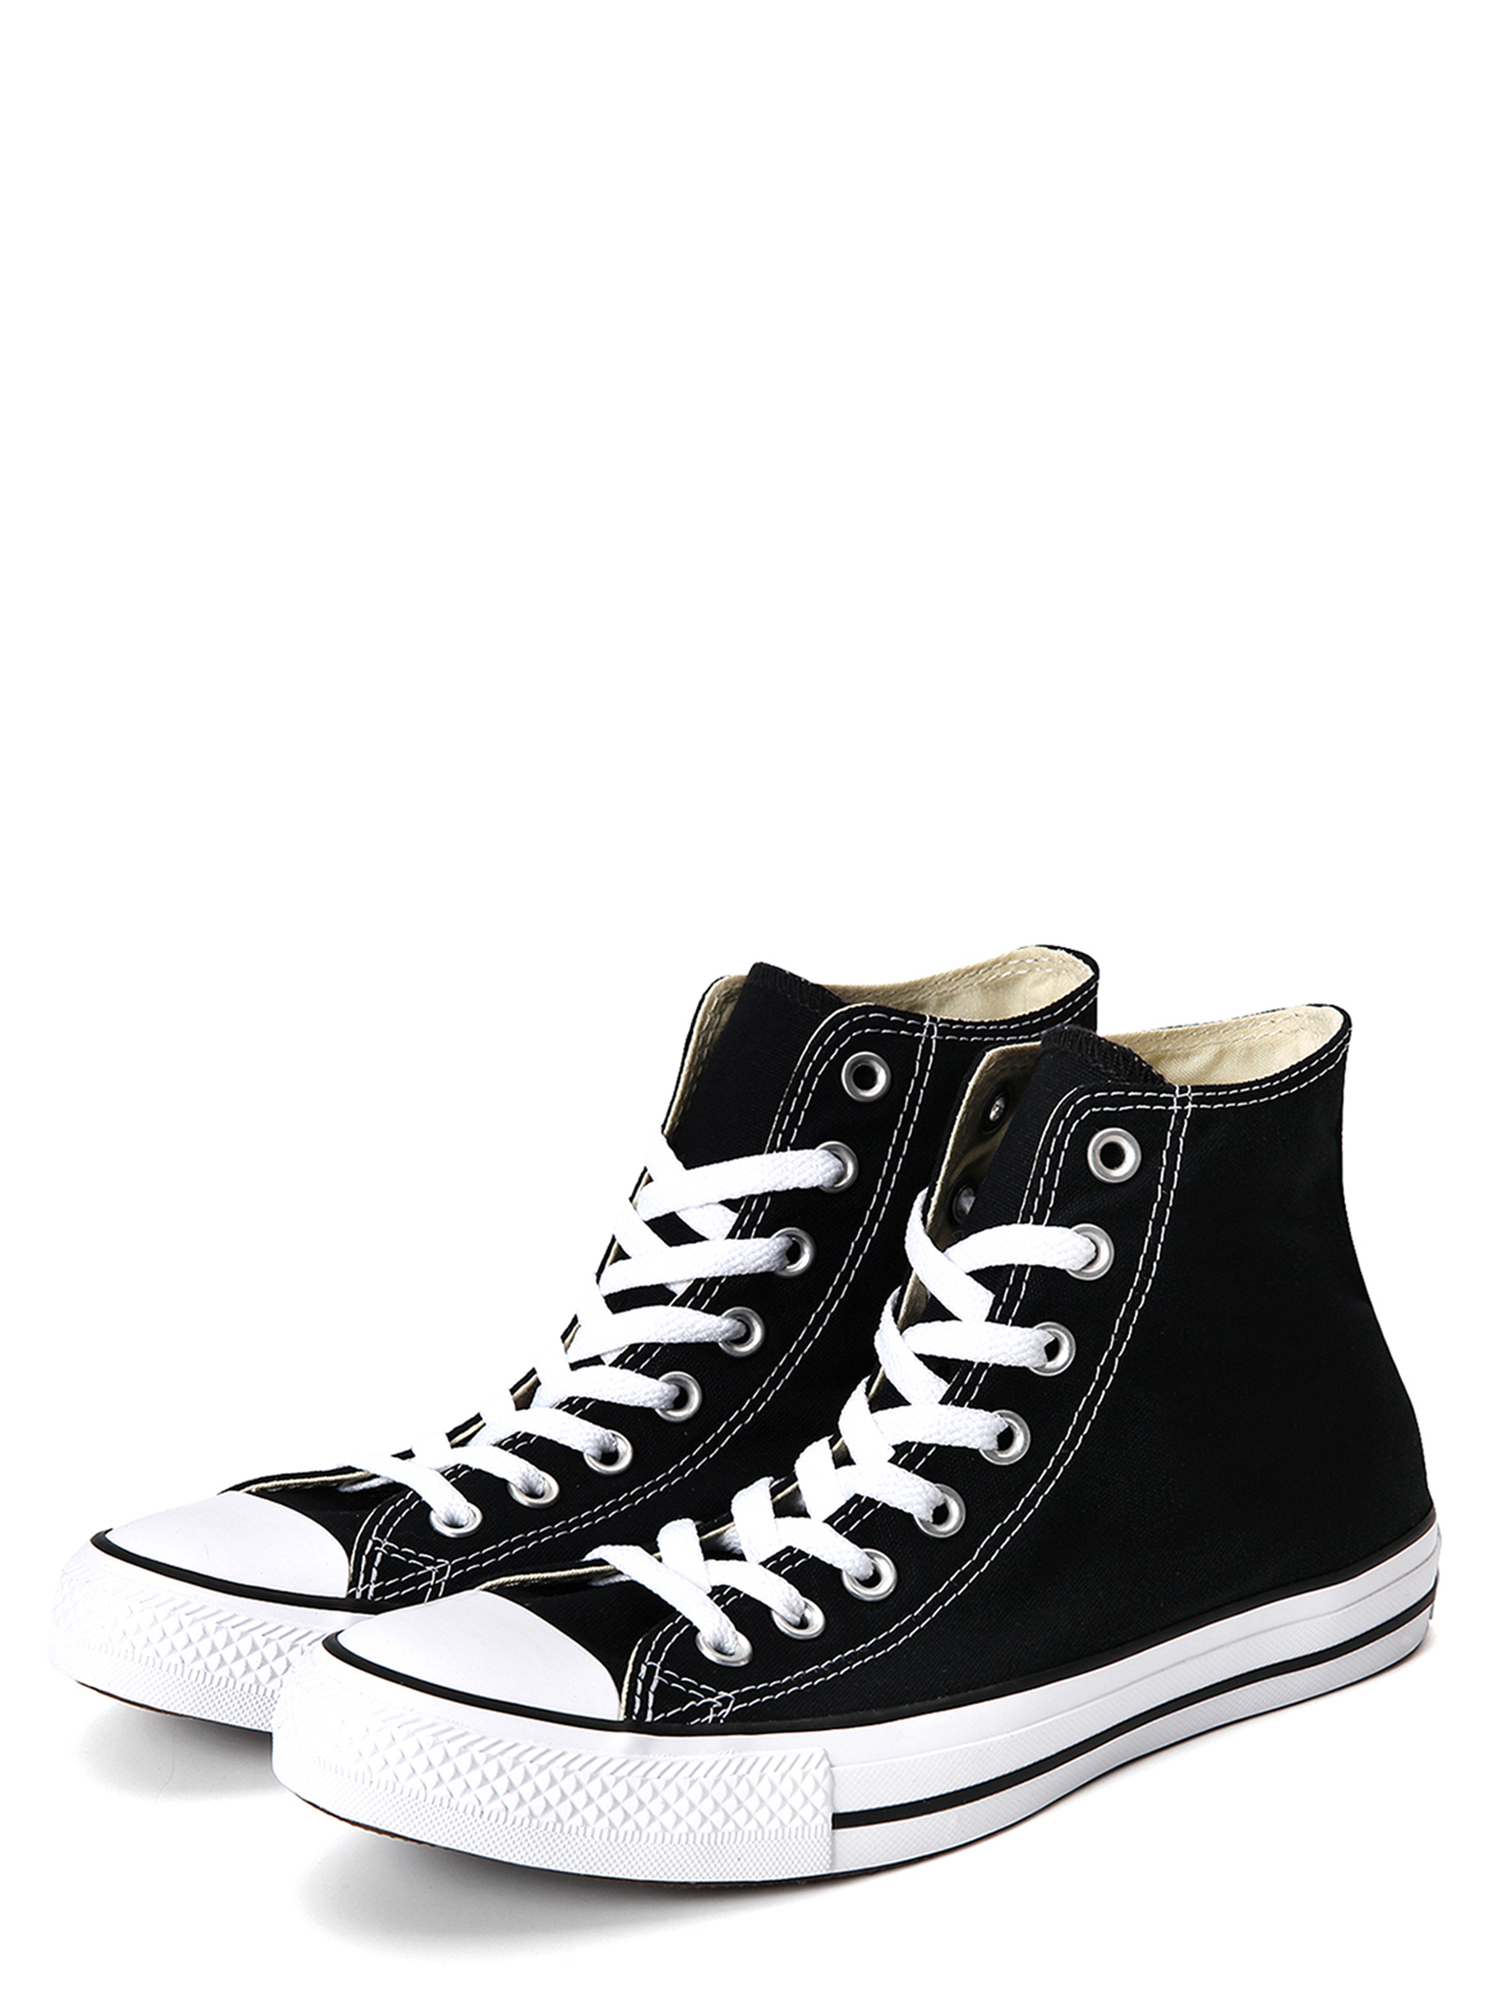 Converse All Star High Top Sneakers M9160 Black by Converse